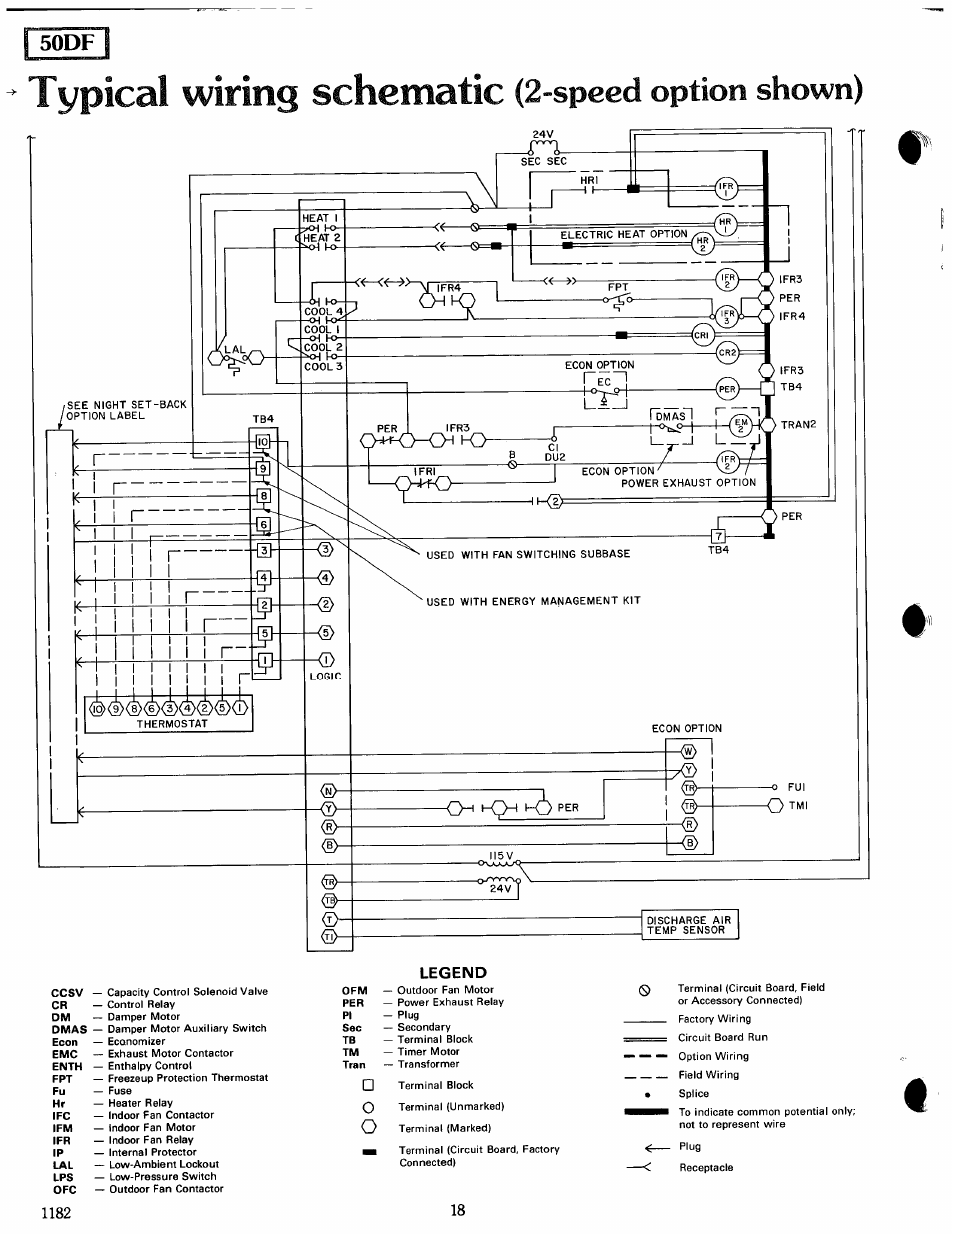 hight resolution of fsodfl ccsv typiccll wiring schematic carrier modu pac 50df user manual page 18 37